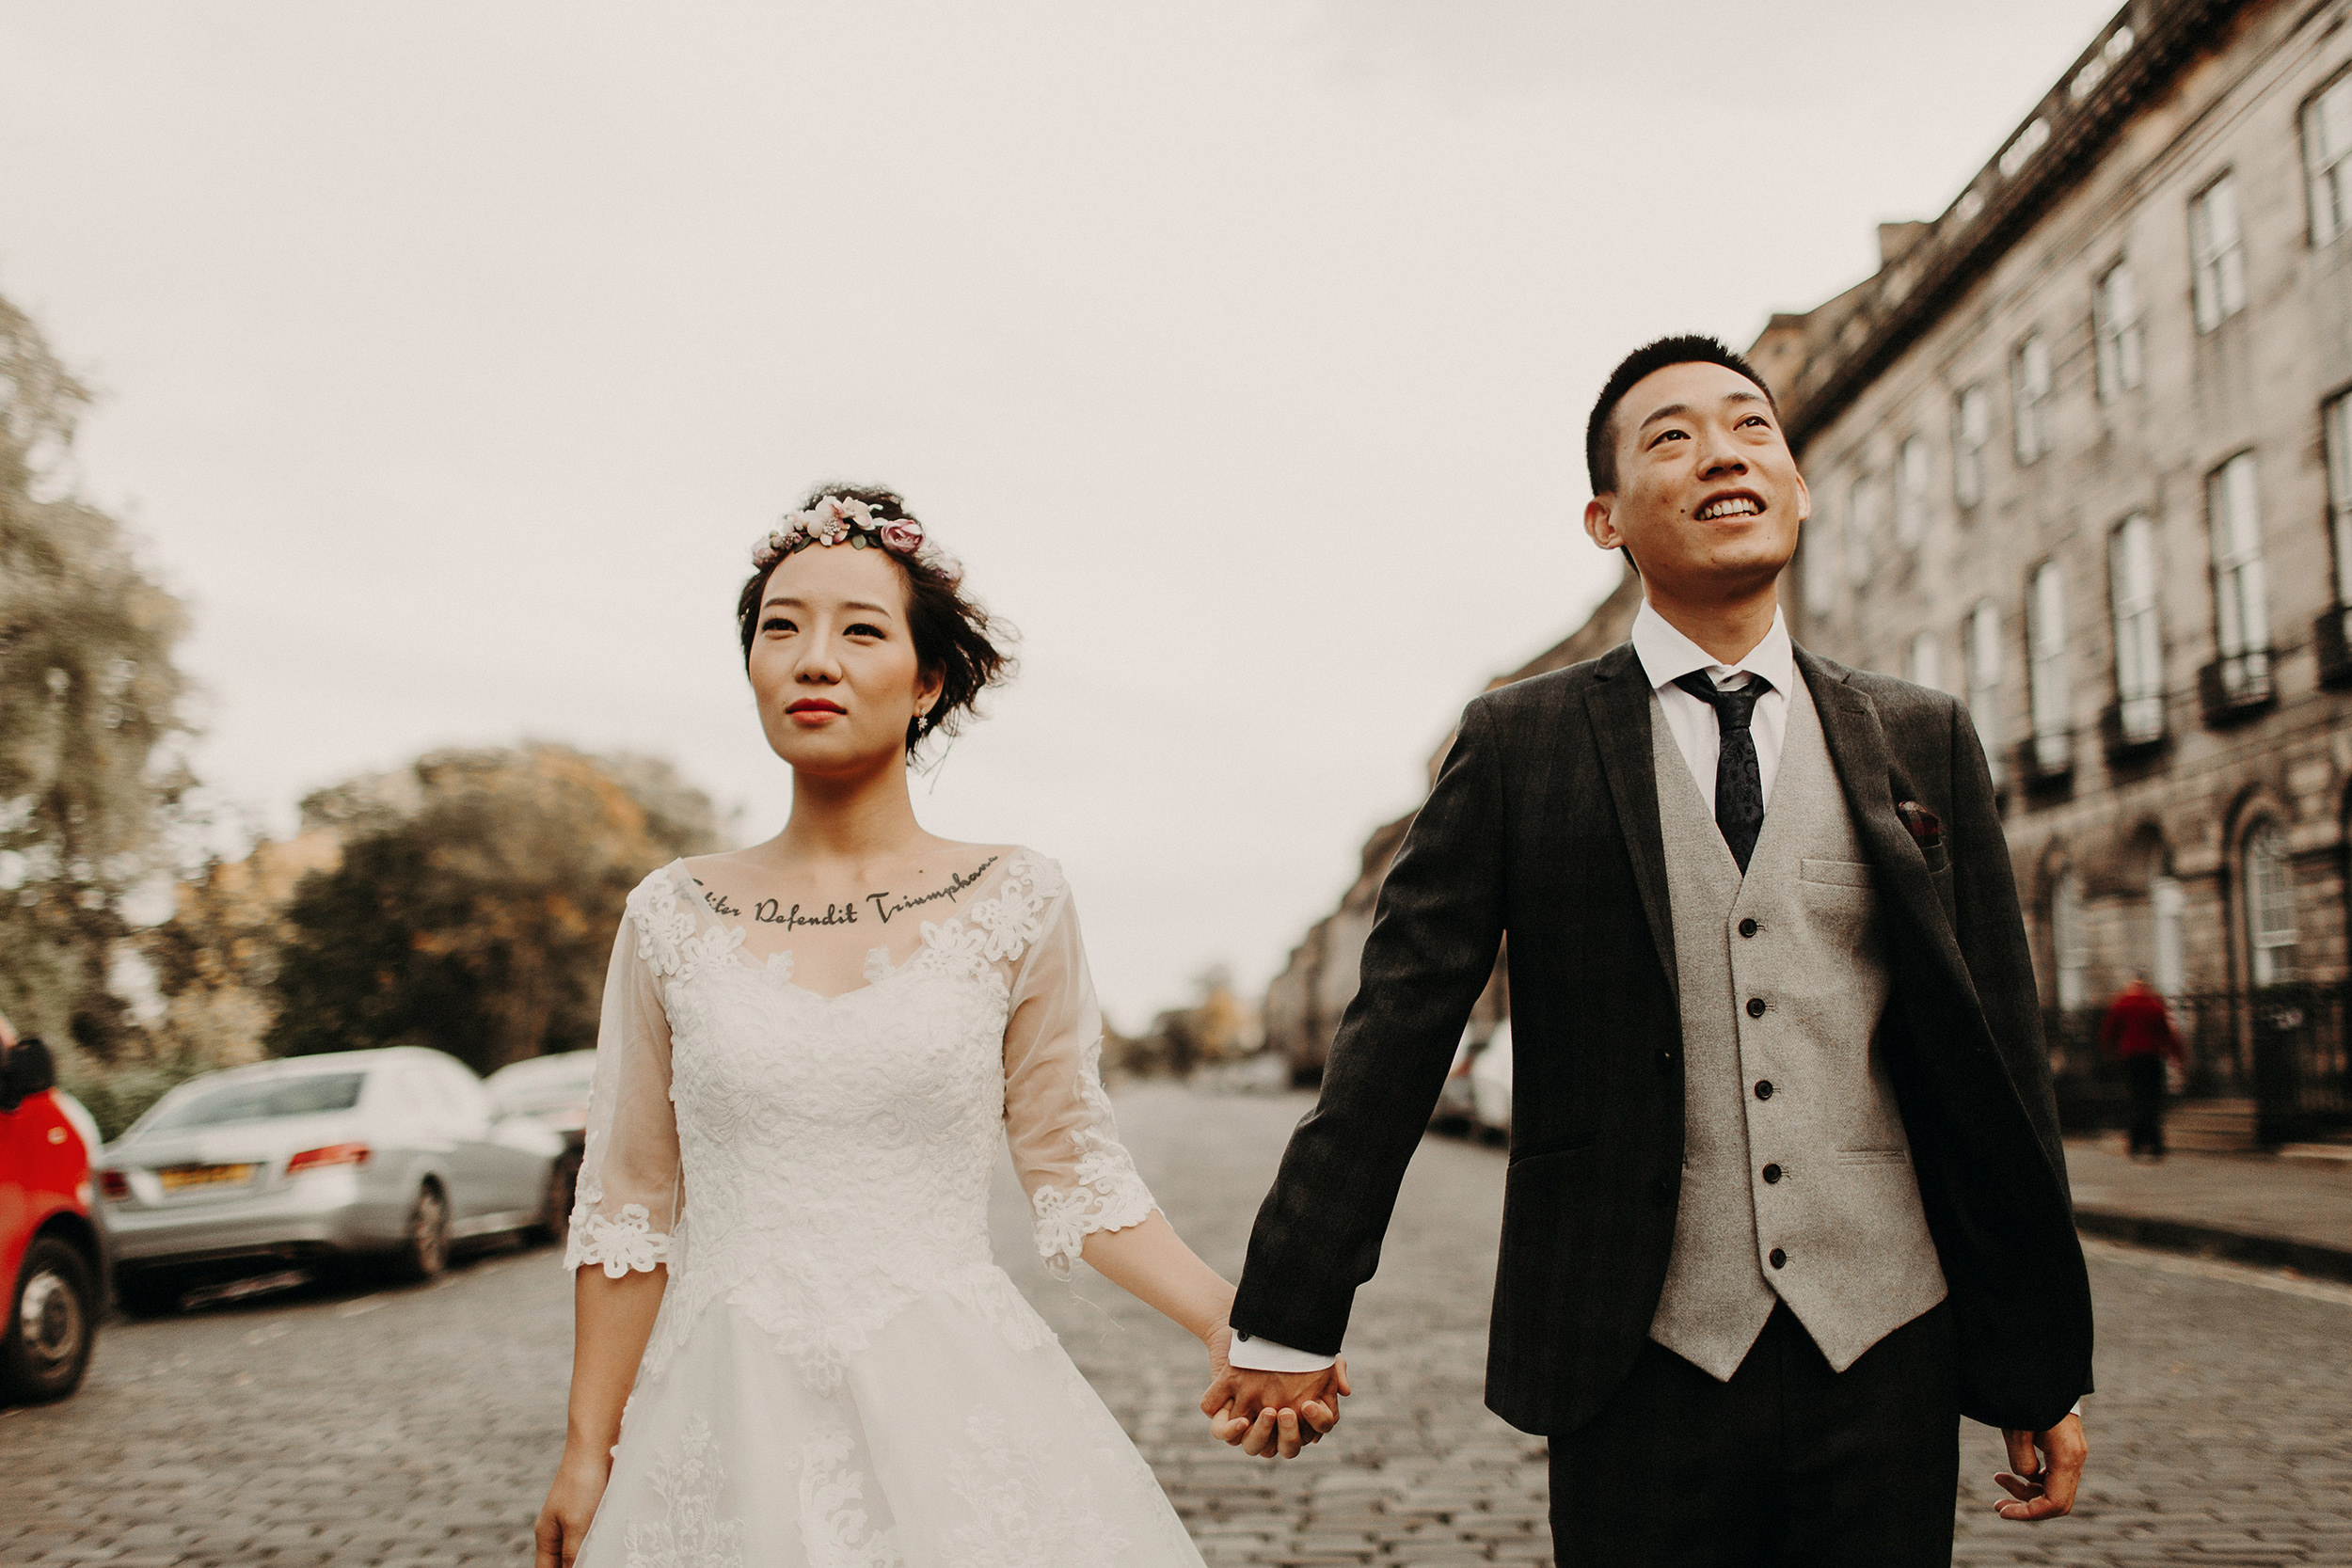 popular elopement photographers in edinburgh